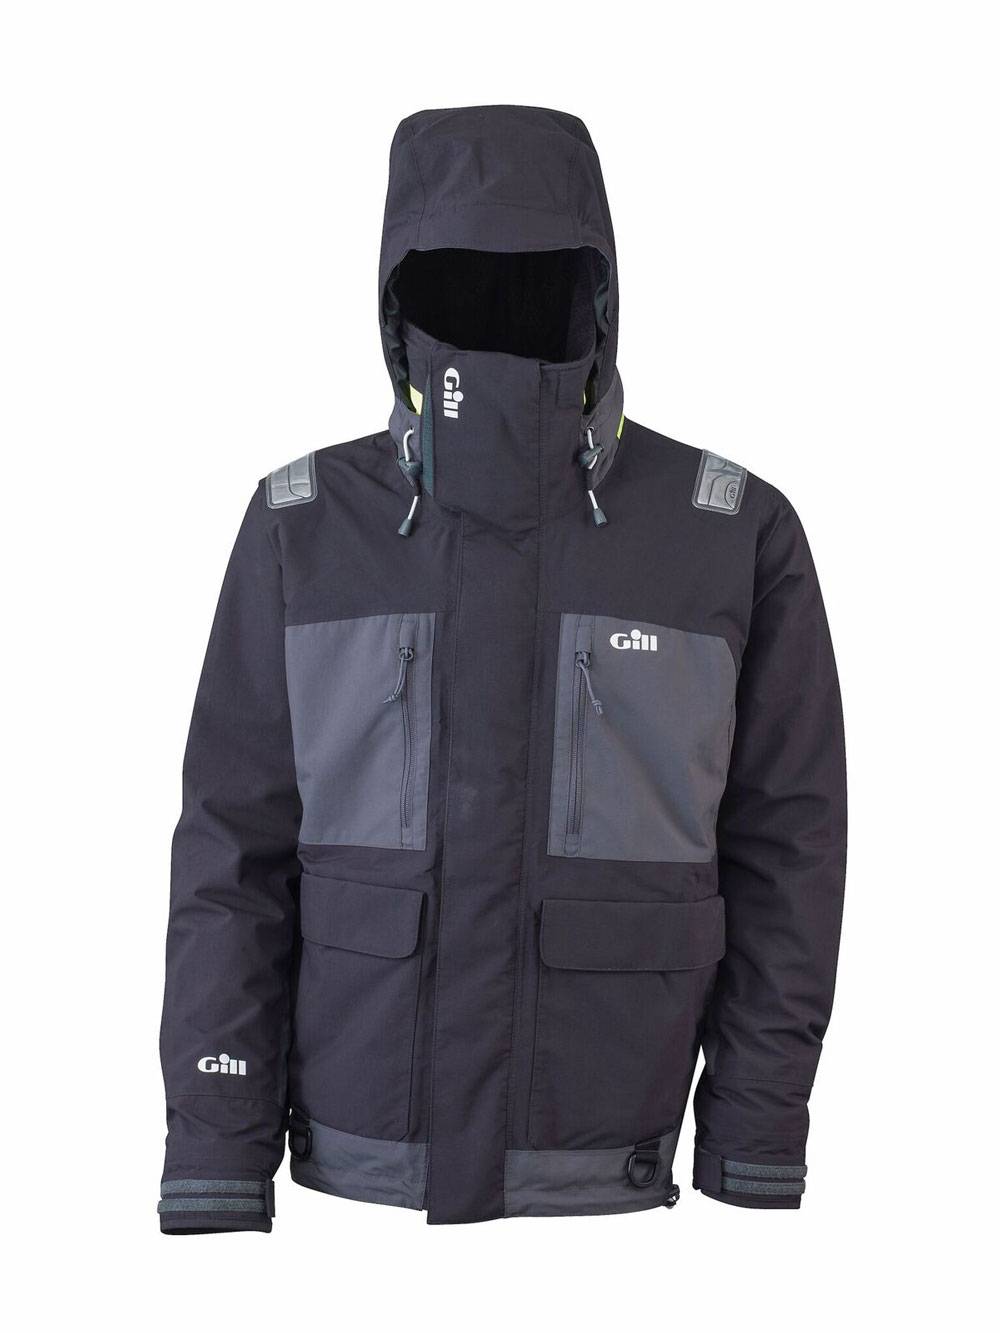 Ready for a new rain jacket? The Gill FG2 Tournament is one you need to check out.